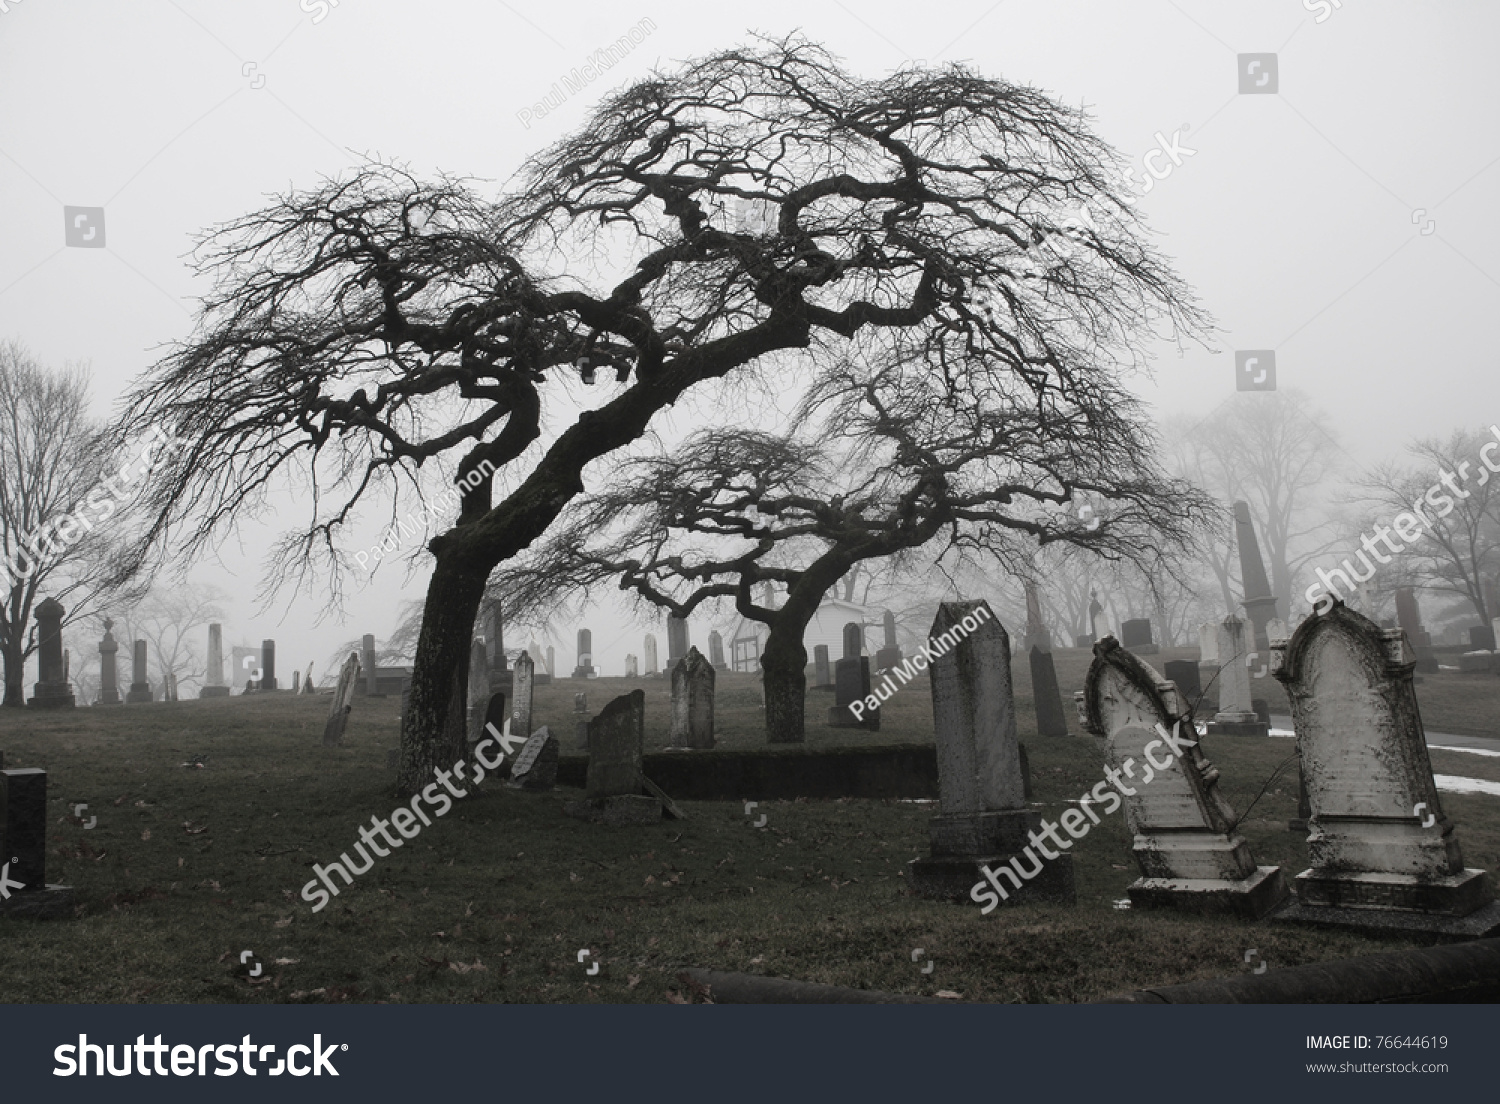 Spooky Graveyard Scene Complete Scary Trees Stock Photo